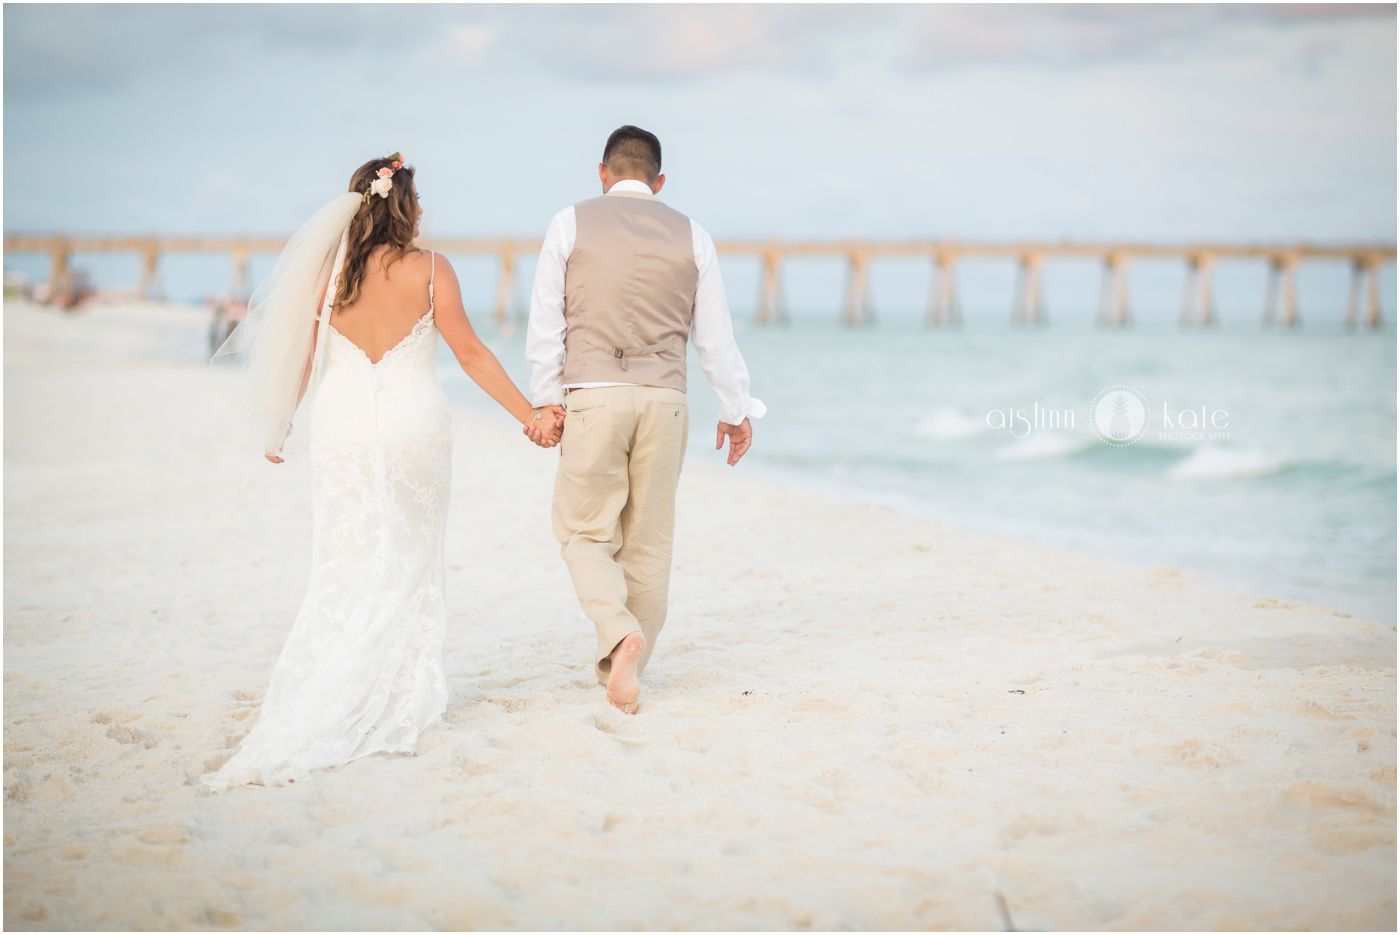 Pensacola-Destin-Wedding-Photographer_6883.jpg